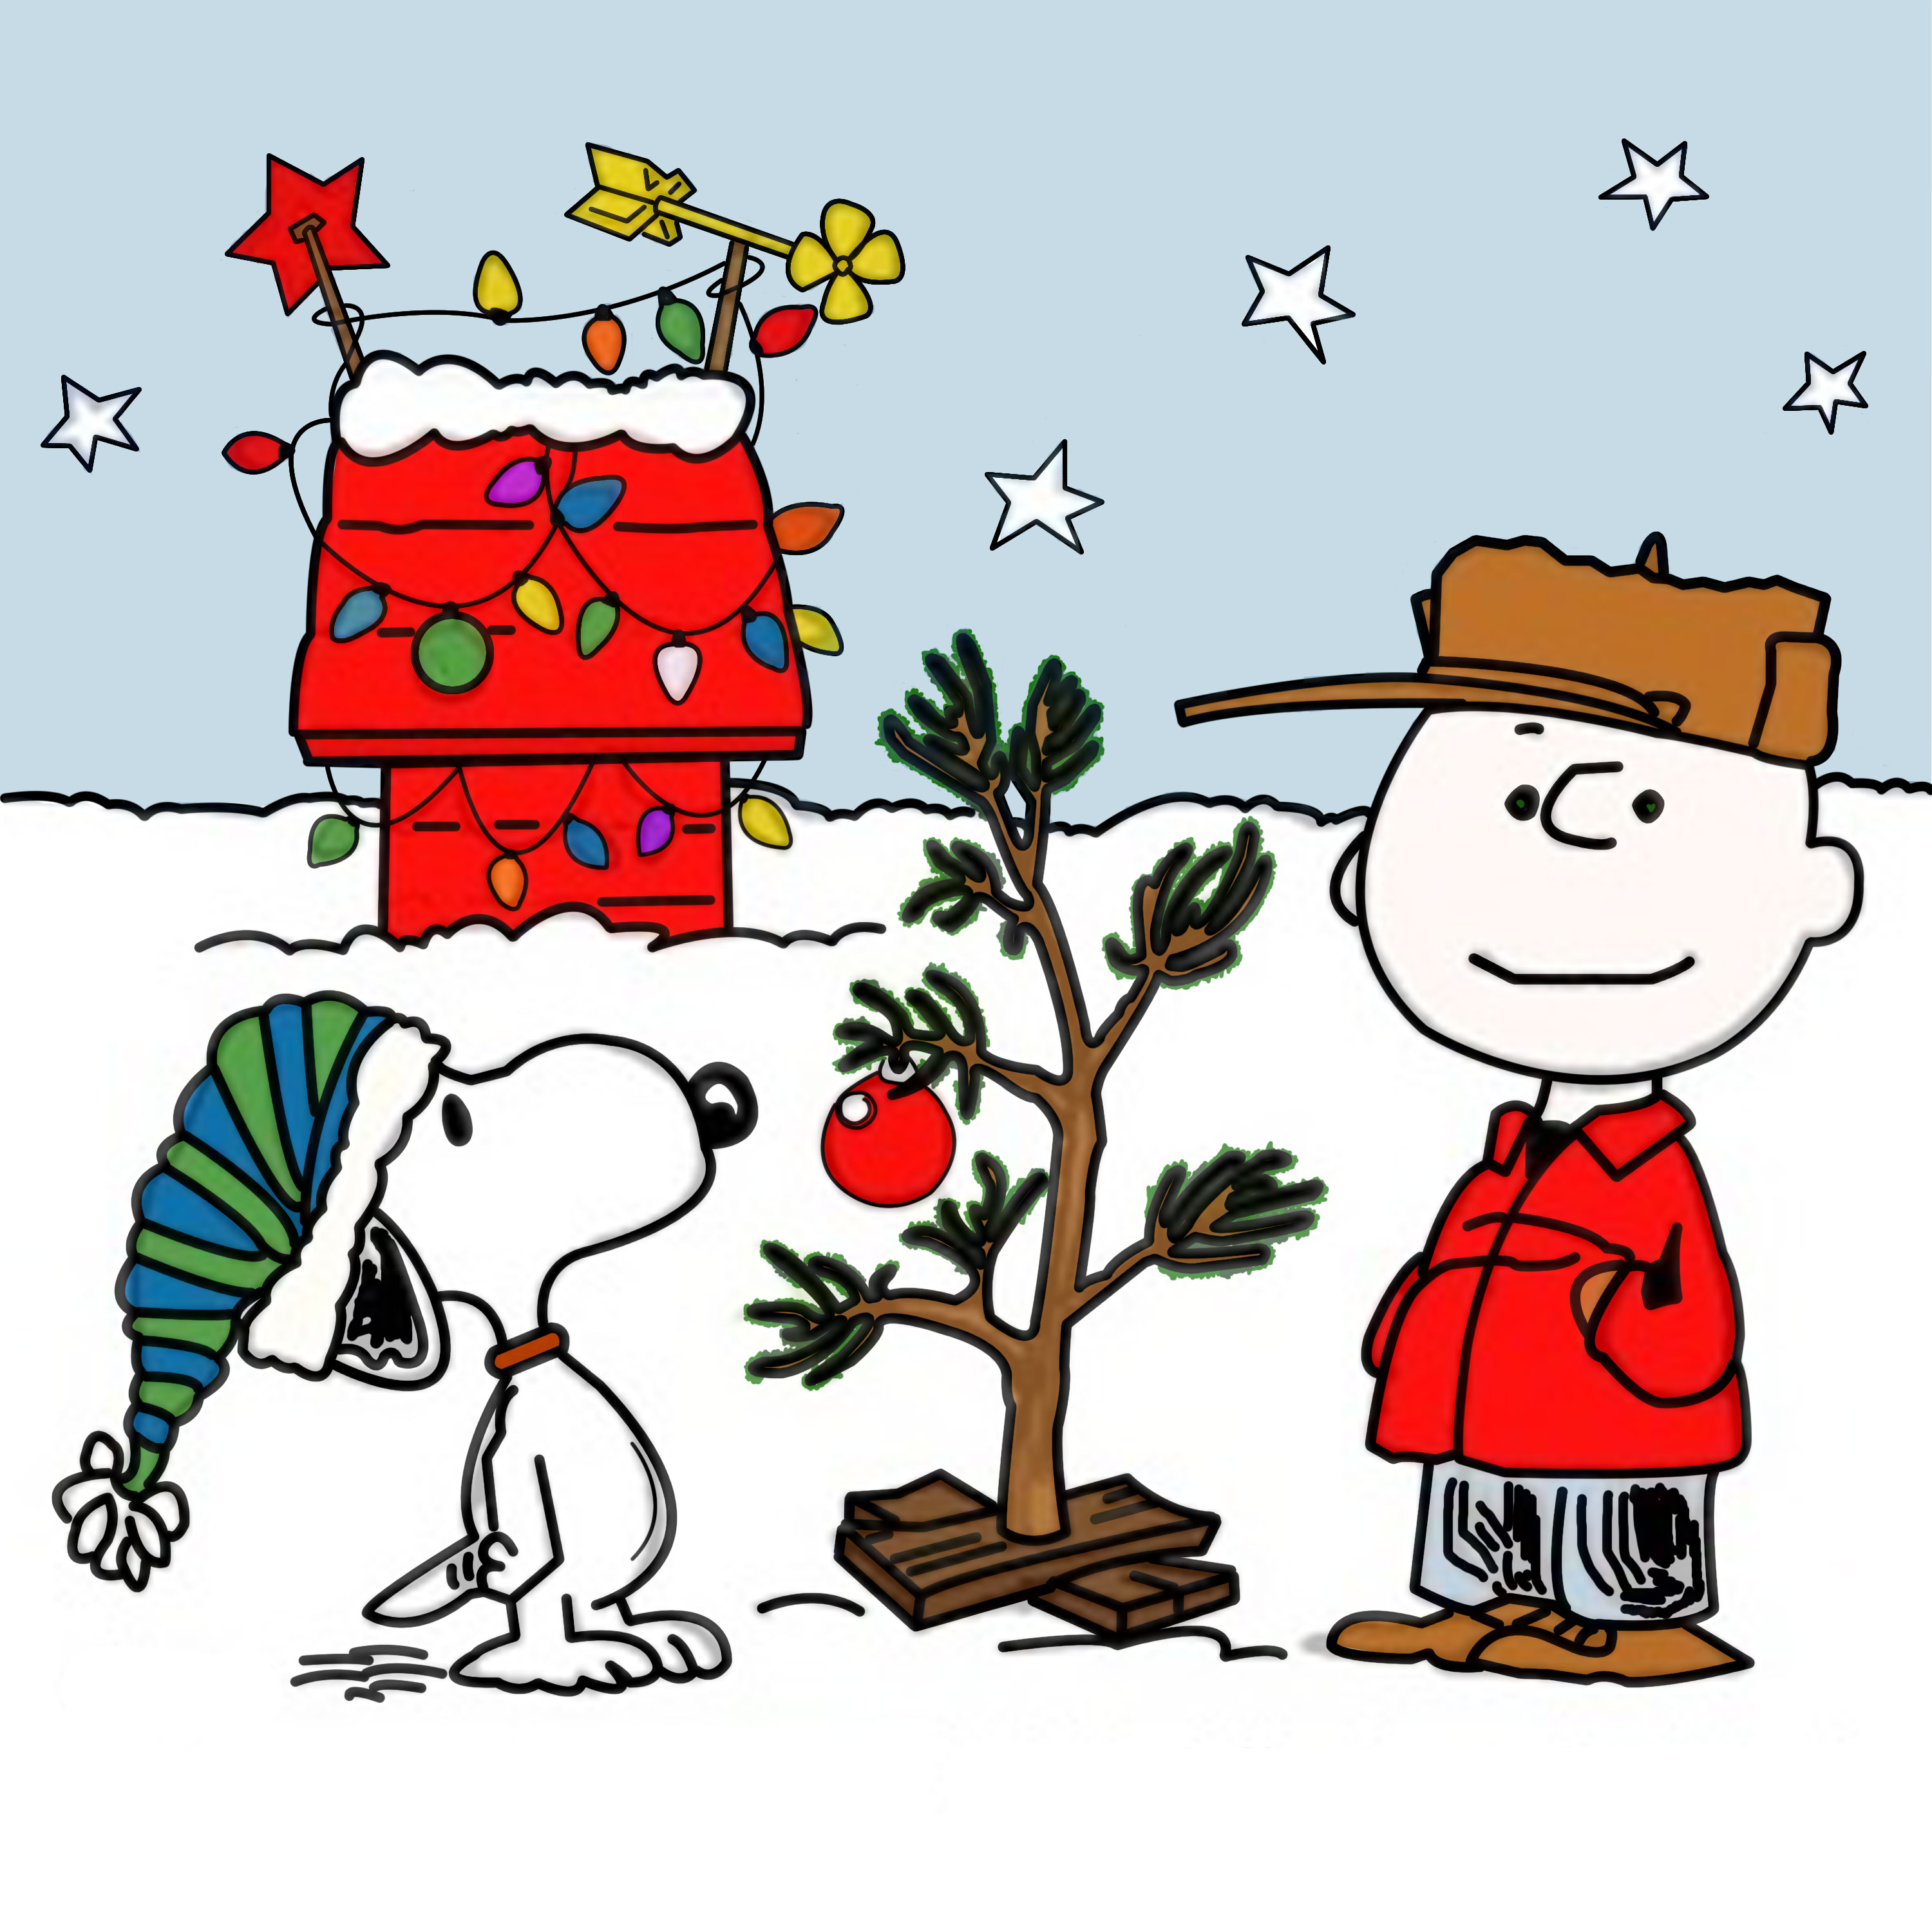 Snoopy And Charlie Brown Christmas Clipart - Clipart Kid